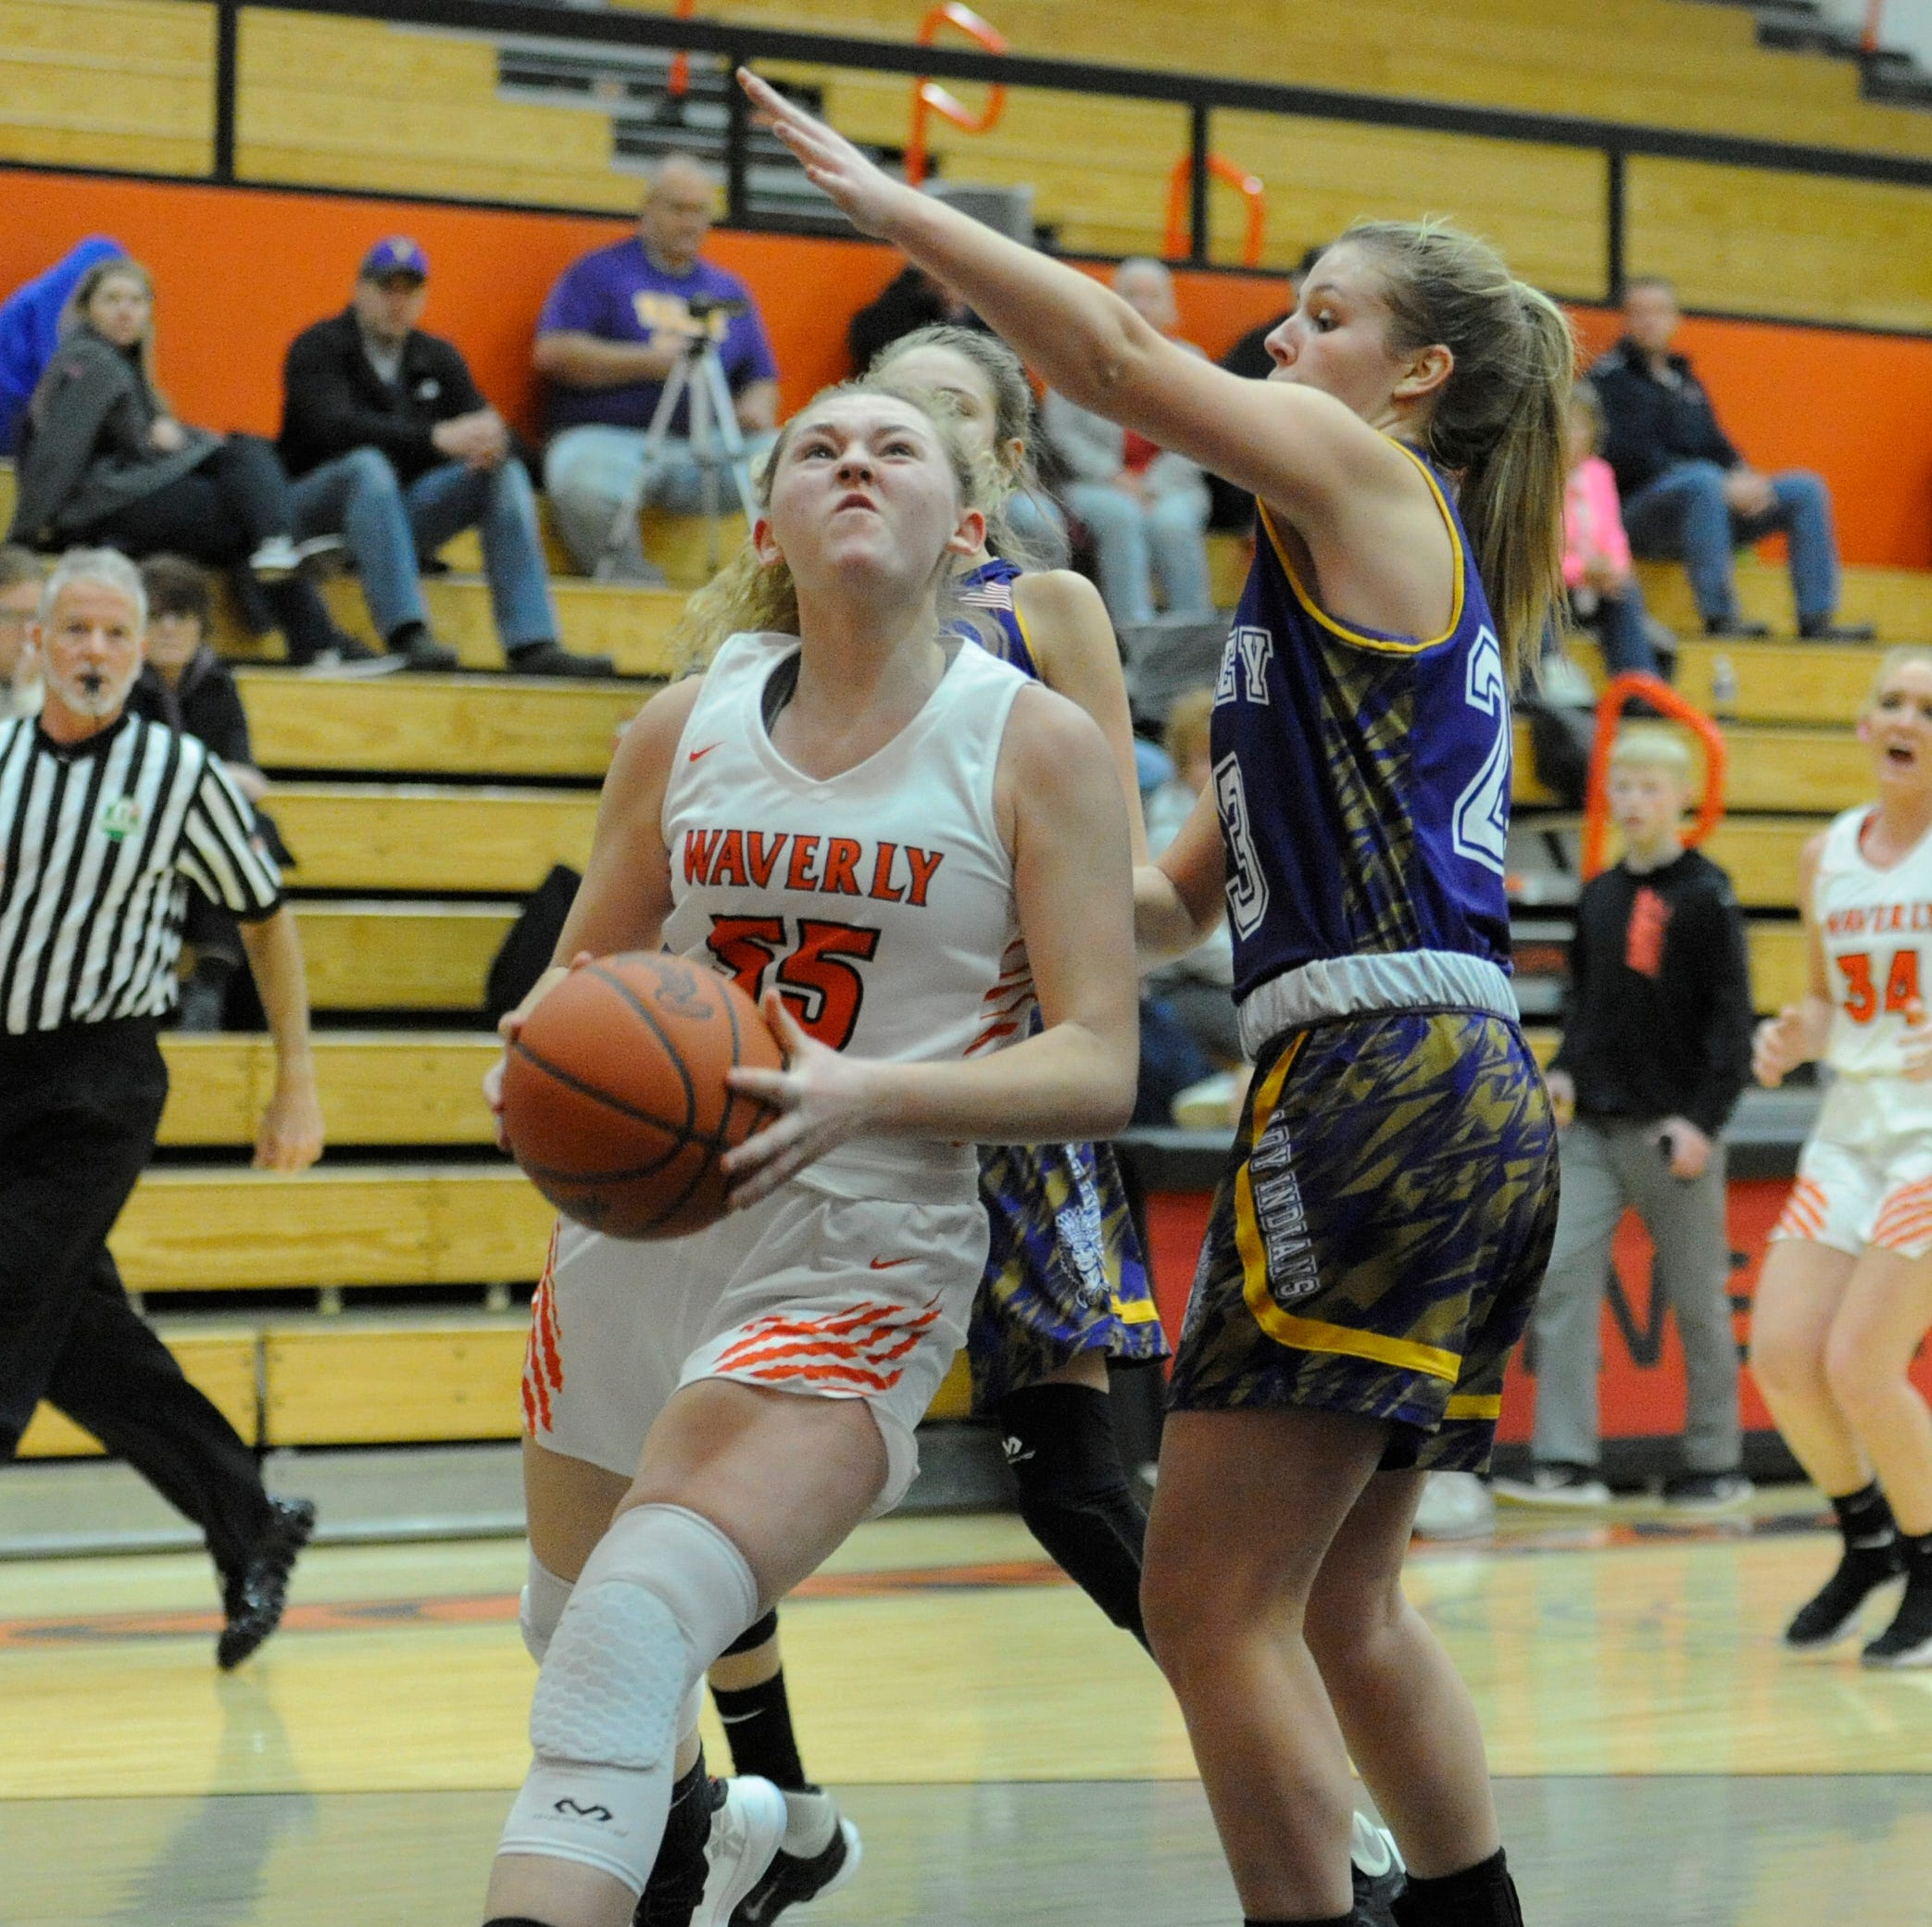 DAILY DIGEST: Waverly girls basketball falls to Wheelersburg despite Carter's 21 boards